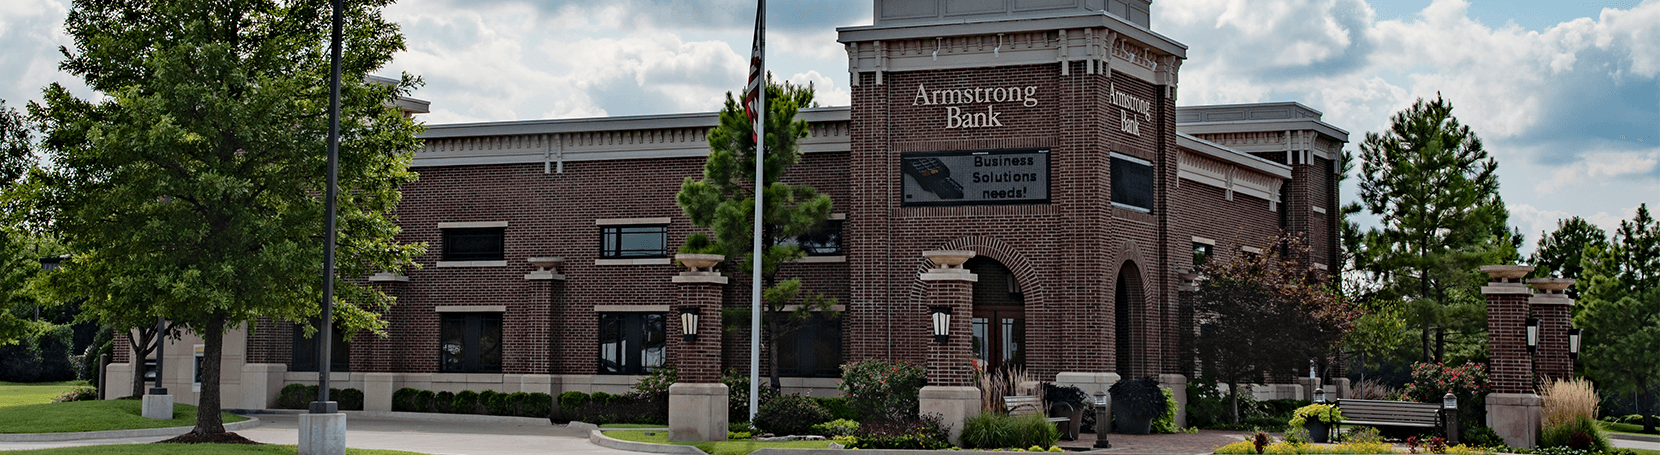 Armstrong Bank building in Bartlesville, Oklahoma.